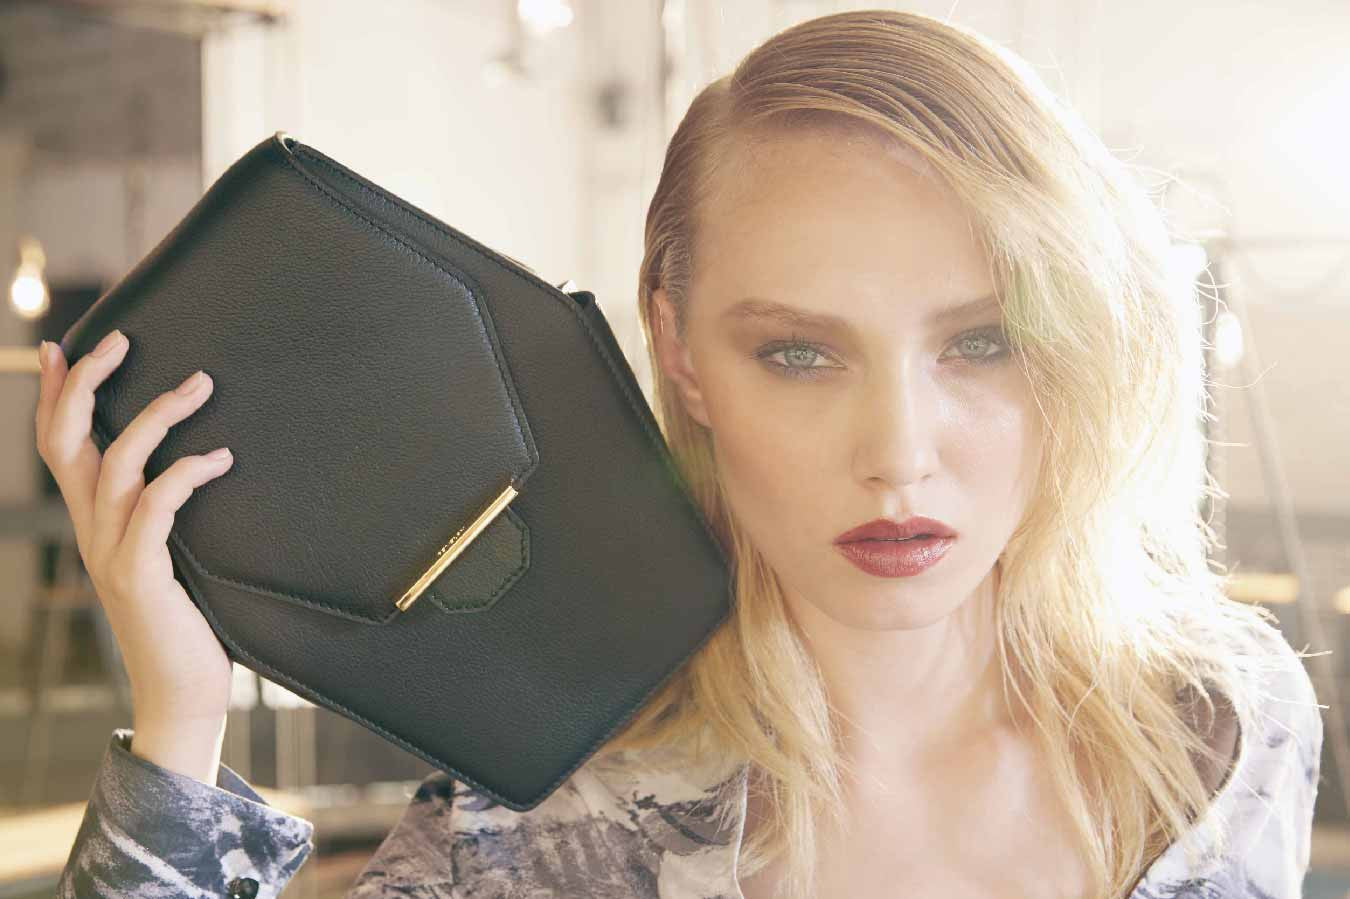 Close up image of a stunning model holding the luxury classic Rue Diamond shoulder handbag in Ebony (Black). Nothing speaks louder than the shape of this handbag; inspired by a diamond- beautiful and rare,  the Rue Diamond is Revelry's iconic style handbag. It is also the most unique piece in the range because of it's cut. Like an expensive diamond cut, the external front and back body of the Rue Diamond handbag is cut as one whole piece for a cleaner and luxury finish. The Rue Diamond has a distinctive style, edgily playful yet elegant. A sure wow factor for someone who is fashion conscious and daring to break any fashion boundaries. Can be teamed up with a casual daily look or bold and evening stylish look, the possibilities are limitless. Shaped like a diamond, the Rue is designed with a long front flap that wraps around from back to front. Both sides of the handbag features a small functional pocket that is enclosed with a small stud. The pocket is useful for keeping smaller items such as receipts, pen or cards.  The structure of the handbag is padded slightly for added comfort and is supported by a strong base to allow the handbag to stand on its own. With an adjustable shoulder strap, the Rue Diamond can be slung on the shoulder or across the shoulder. Alternatively, the shoulder strap can be removed for a clutch style look or double wrapped around the top flap for a top handle look. Whether it is worn casual or dressy, the Rue Diamond handbag makes any outfit distinctively striking. Designed in a textured full grain leather, the Rue Diamond comes in a deep black colour called Ebony; a mysterious and sophisticated color palette that evokes a sense of power and mighty. The choice of leather is captivated with a surrounding tonal oil edging and a mild supple sheen leather surface. This sleek handbag and distinctive silhouette has a combination of a firm front and back body and flexible sides for an elegant finish. The front features a top flap with an embellished 22 karat gold Revelry's exclusive gold bar hardware with subtle branding embossed at the top of the hardware. Custom mould in quality metal and plated in 22 karat gold, this Gold Bar hardware is a unique and innovative lock closure that serve as a design feature and secure lock function. The back features a stitching detailing that simulates the shape of the font flap to create an overall balance looking design. The interior of the Rue Diamond features a deep set compartment with ample spacing to fit most of your essentials, e.g. wallet, keys, mobile phone, notebook, lipsticks, pen and many more. The handbag comes with a widen sides to allow easy access into the narrow opening of the handbag. A back pocket is available to store and organise smaller items such as cards and receipts. Every piece is internally lined with high quality gold woven fabric at the internal compartment and back pocket while the rest of the interior body including top flap, facing and pocket binding is lined in textured full grain cow leather. An iconic Revelry logo is embossed in gold on the mid facing of the handbag for that designer luxury finish. Each handbag is crafted in meticulous detailing and luxury finish; with attention to detail on the stitching of the handbag. A luxury and unique masterpiece, the Rue Diamond shoulder handbag is a true gem on it's own and is available online at www.revelry-rvly.com